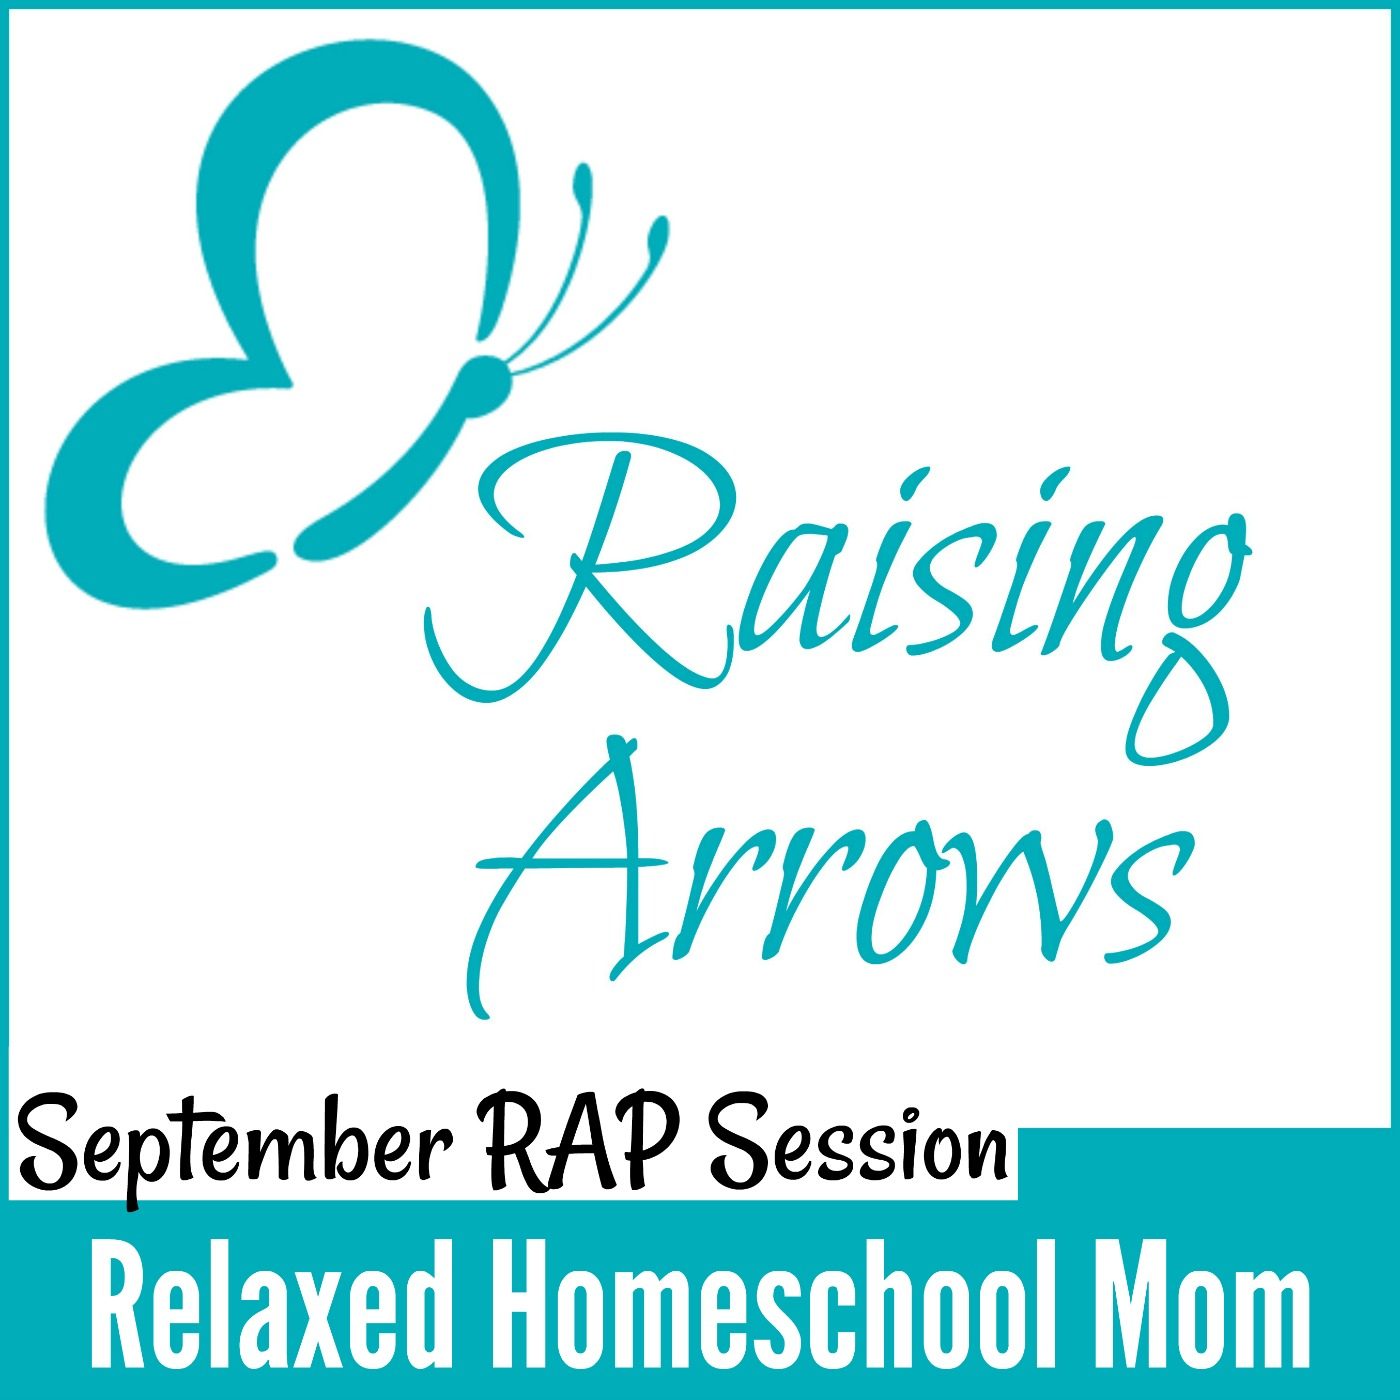 How to be a relaxed homeschool mom who isn't stressed and overwhelmed! September's Raising Arrows Homeschool Mom Support Group podcast!